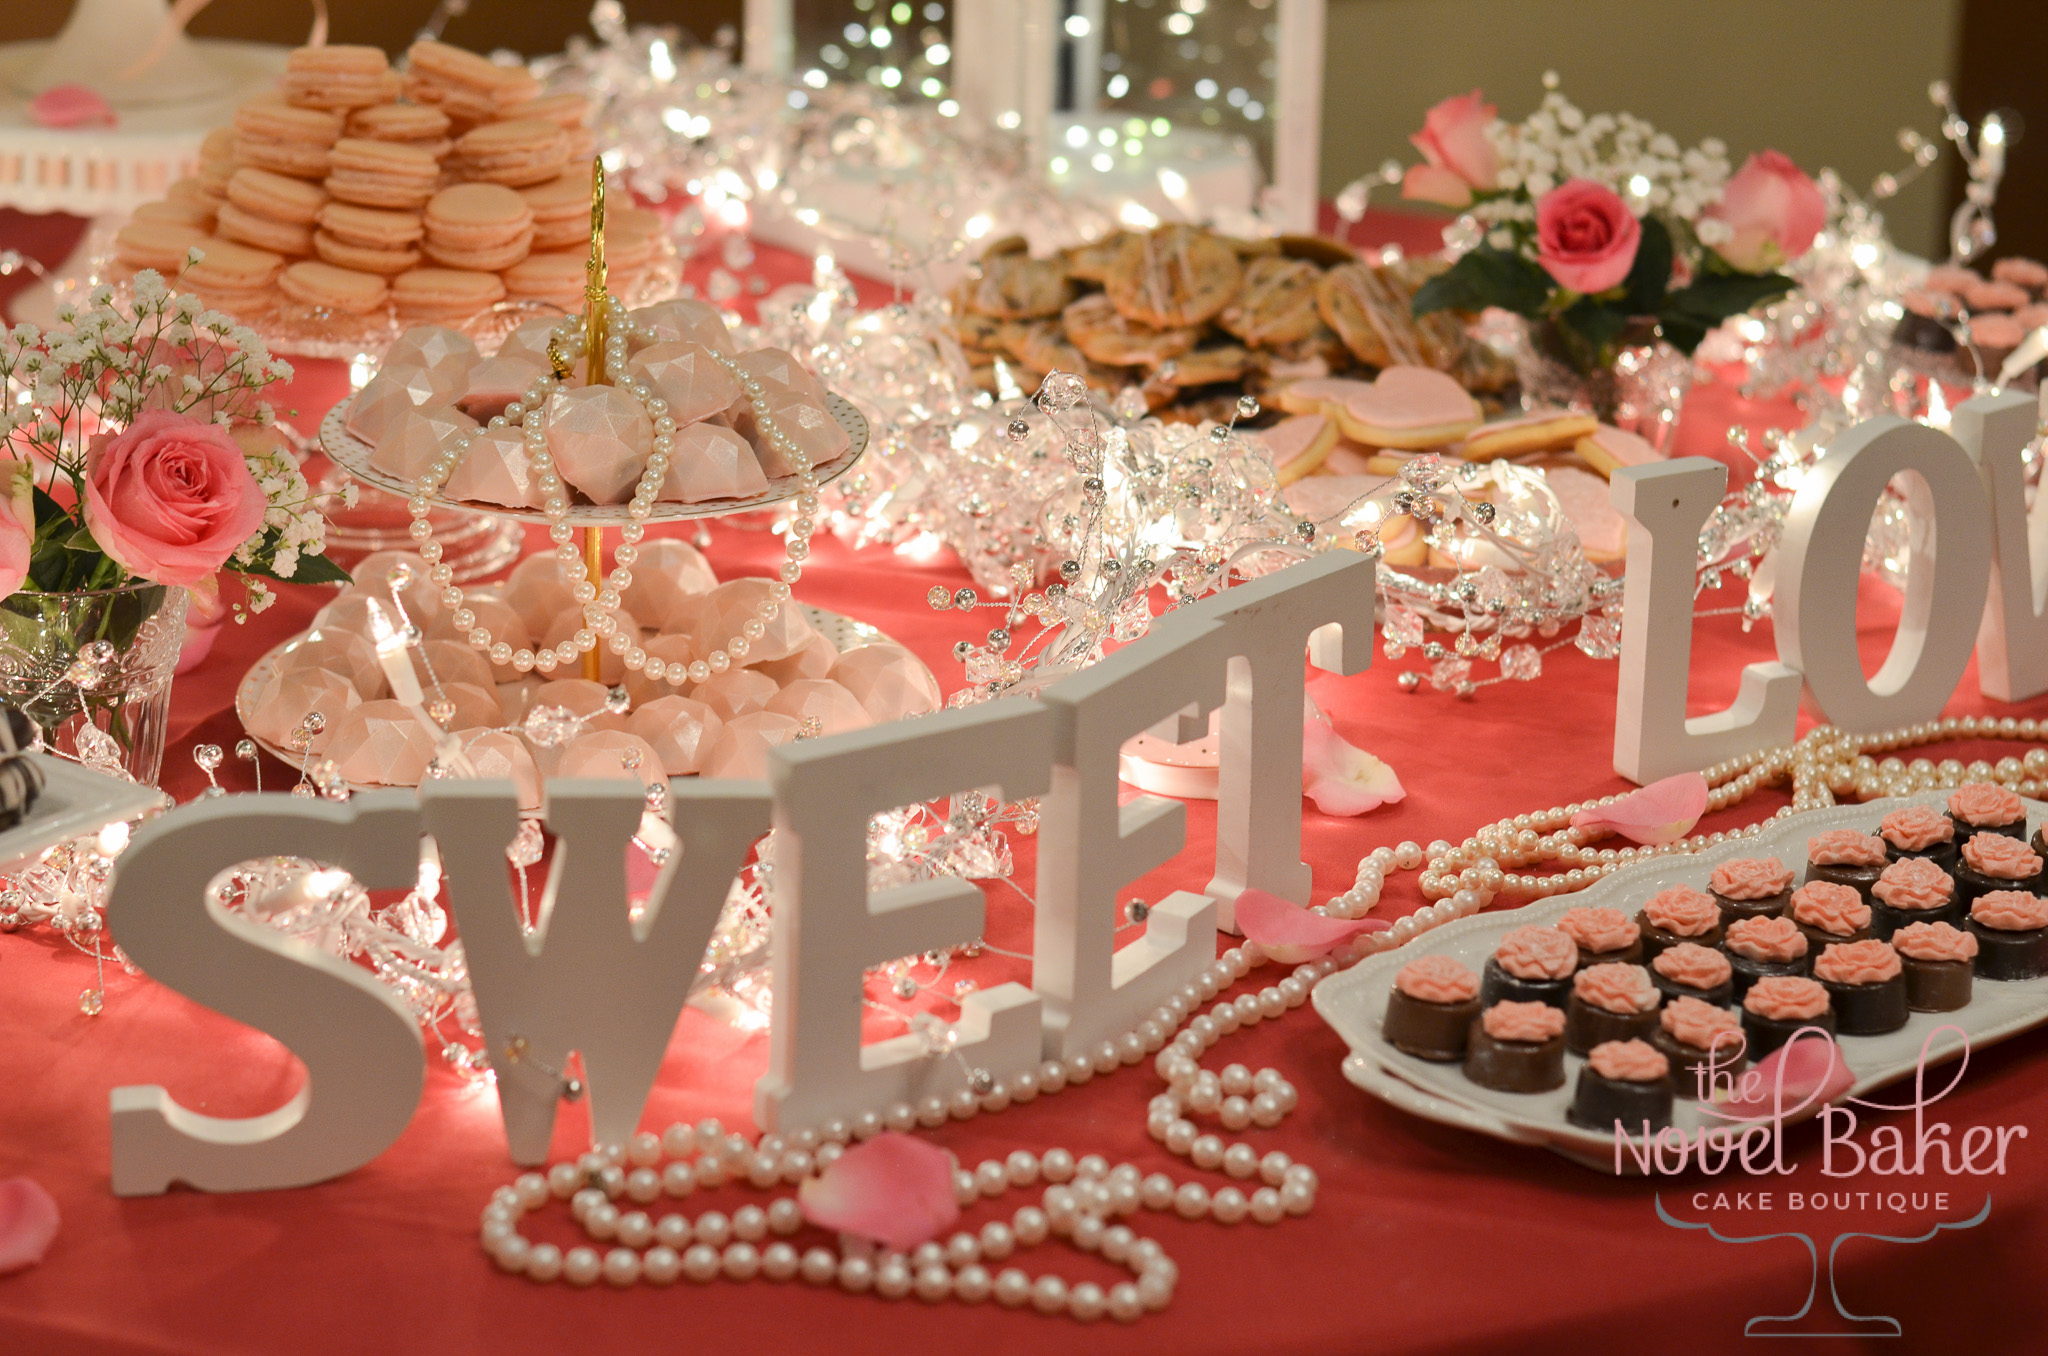 Tea Party Table with Delicate and Dreamy Cookies, Macarons, Pretzels, and Chocolates in blush and white.